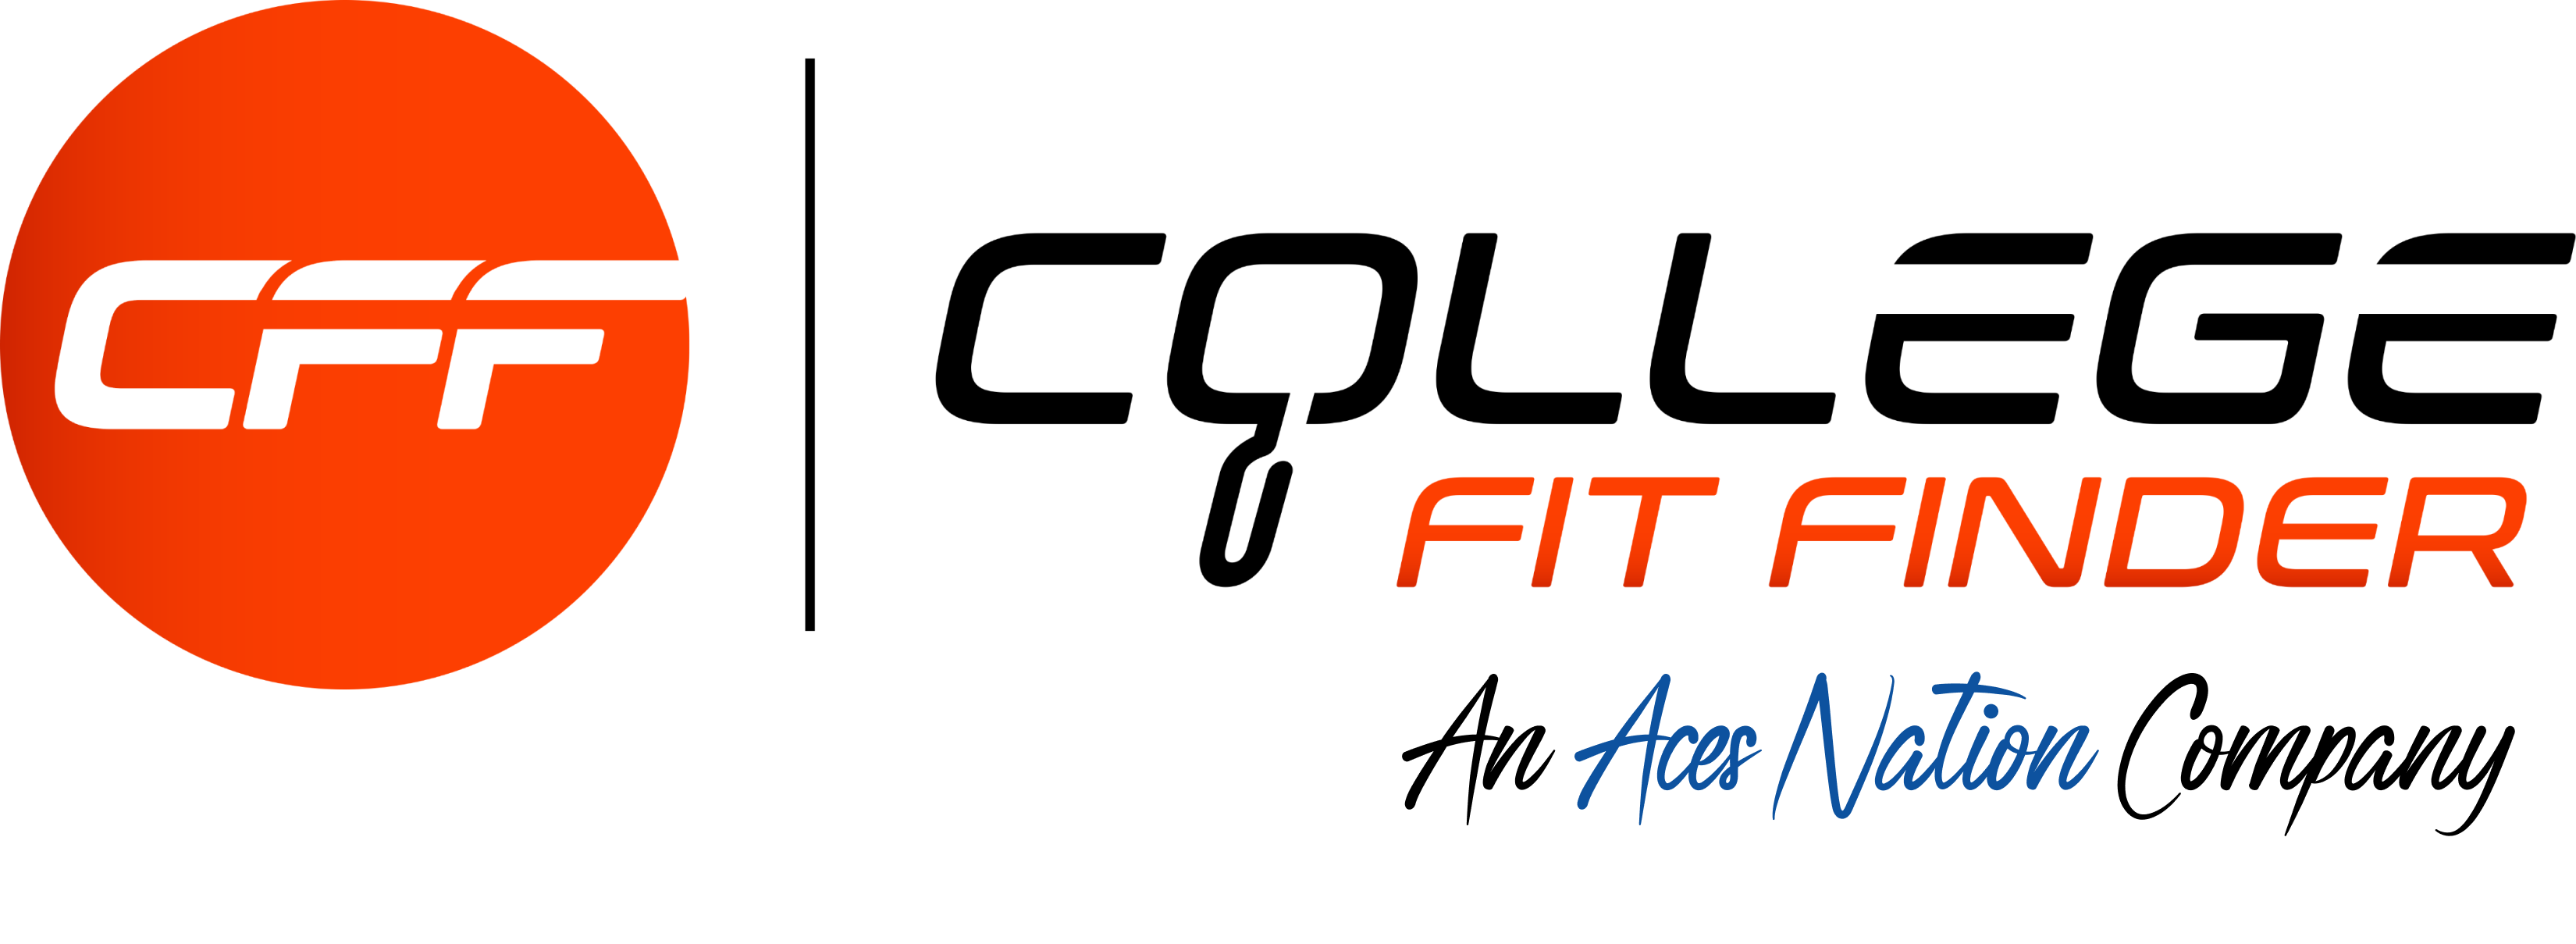 College fit finders logo